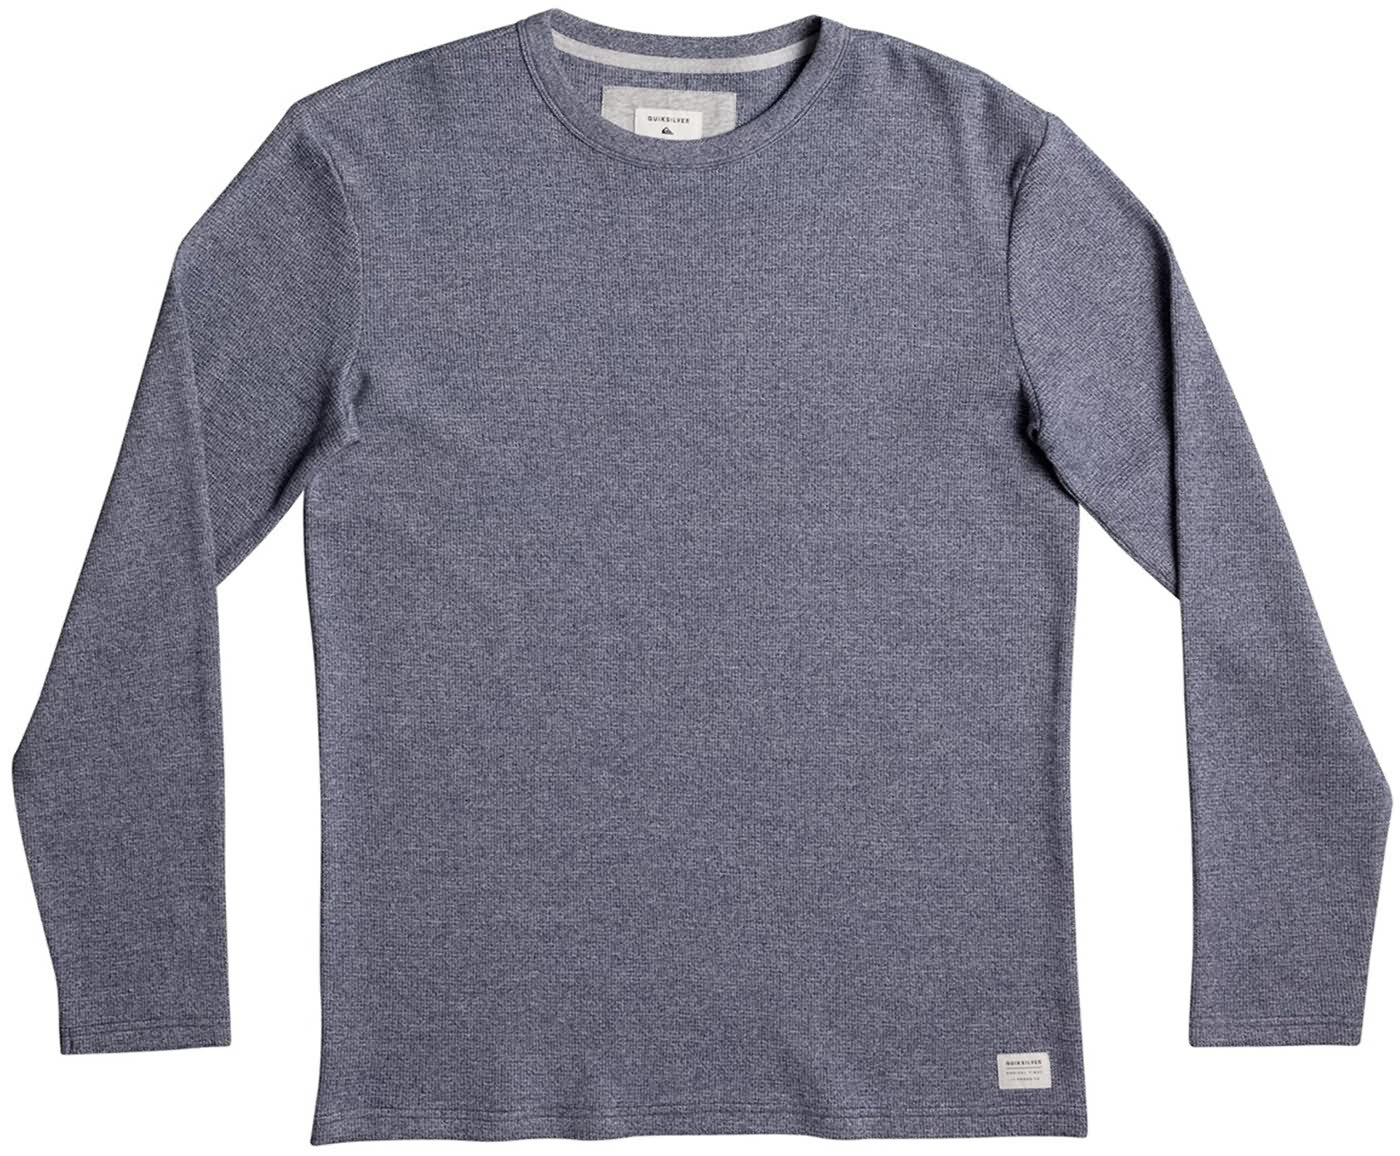 Quiksilver Surf Fall 2017 Mens Lifestyle Shirts & Sweatshirts Preview